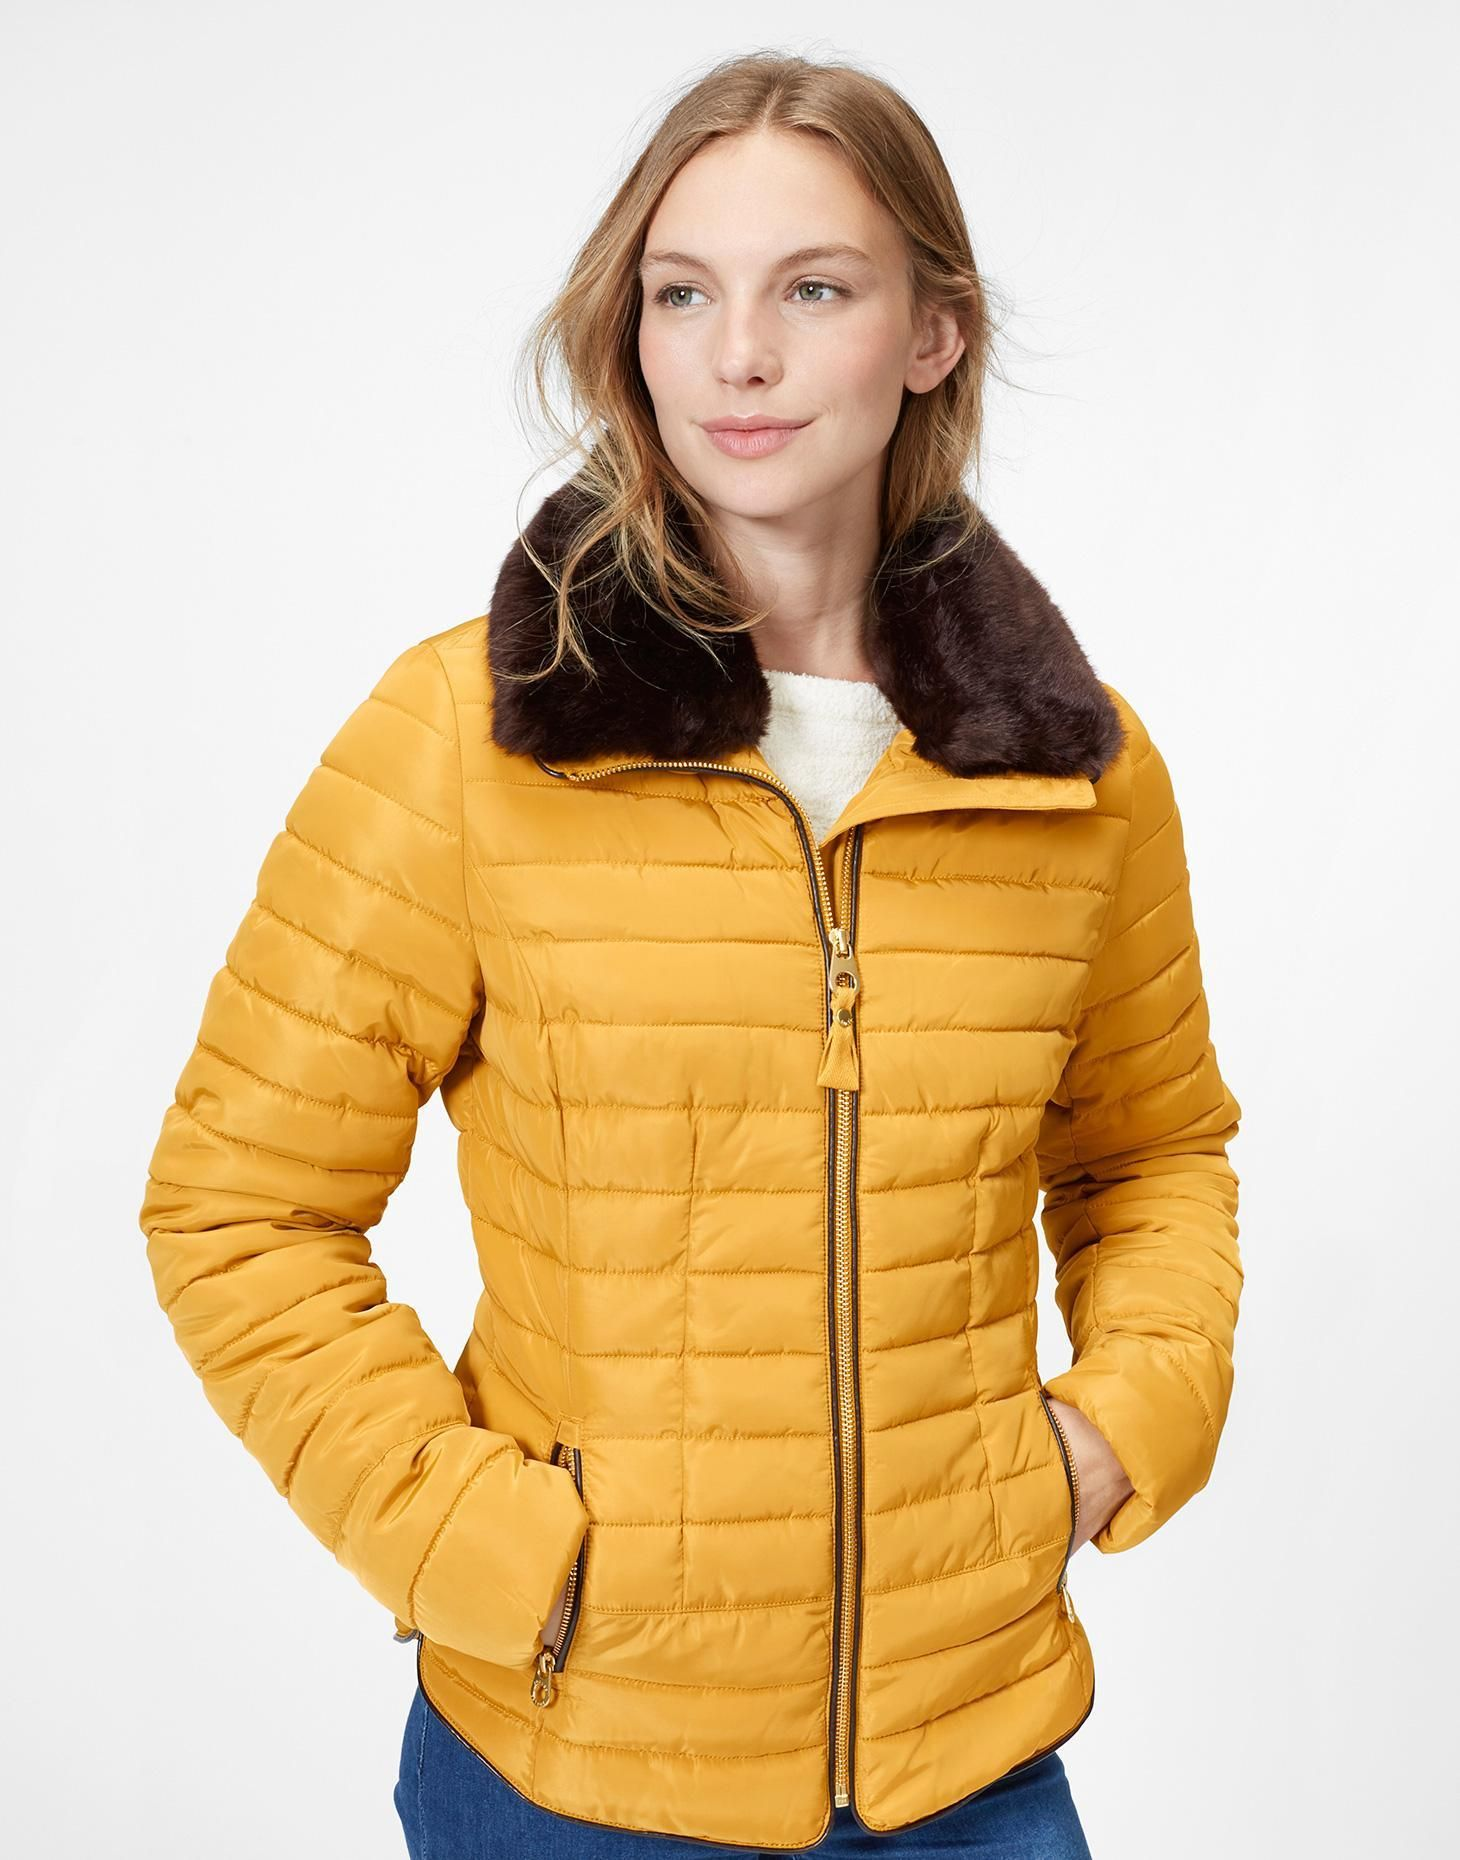 Gosfield Caramel Padded Jacket | Joules UK | My style! | Pinterest ... : joules ladies quilted jackets - Adamdwight.com